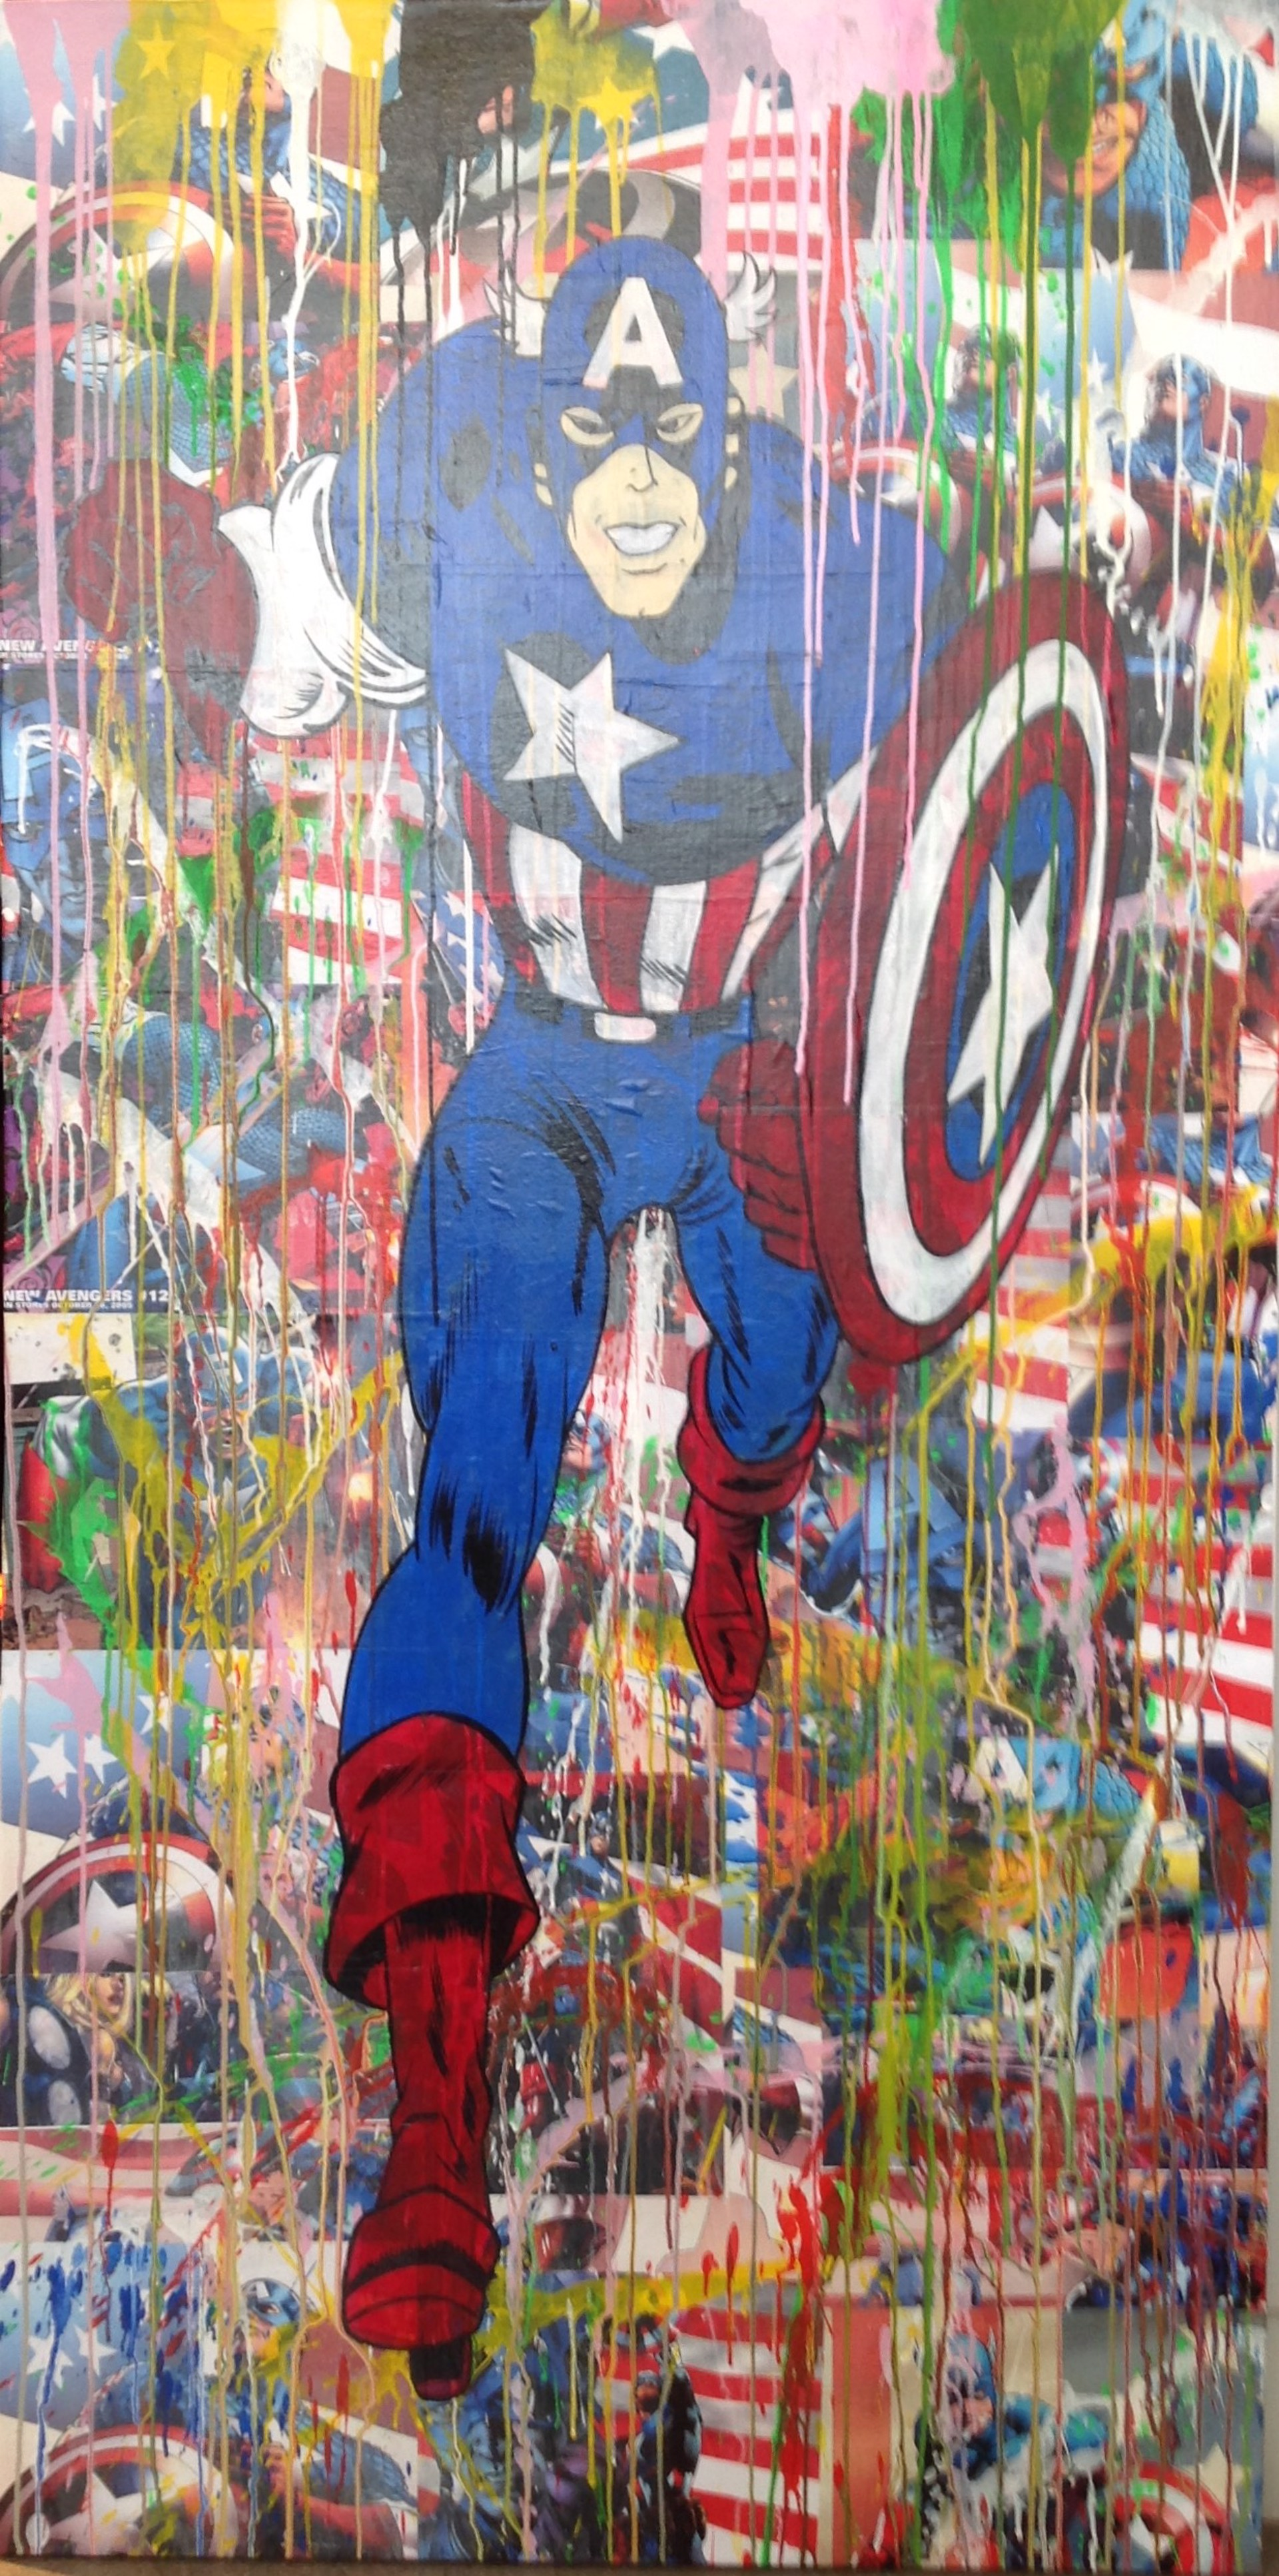 Capt. America  by Buma Project